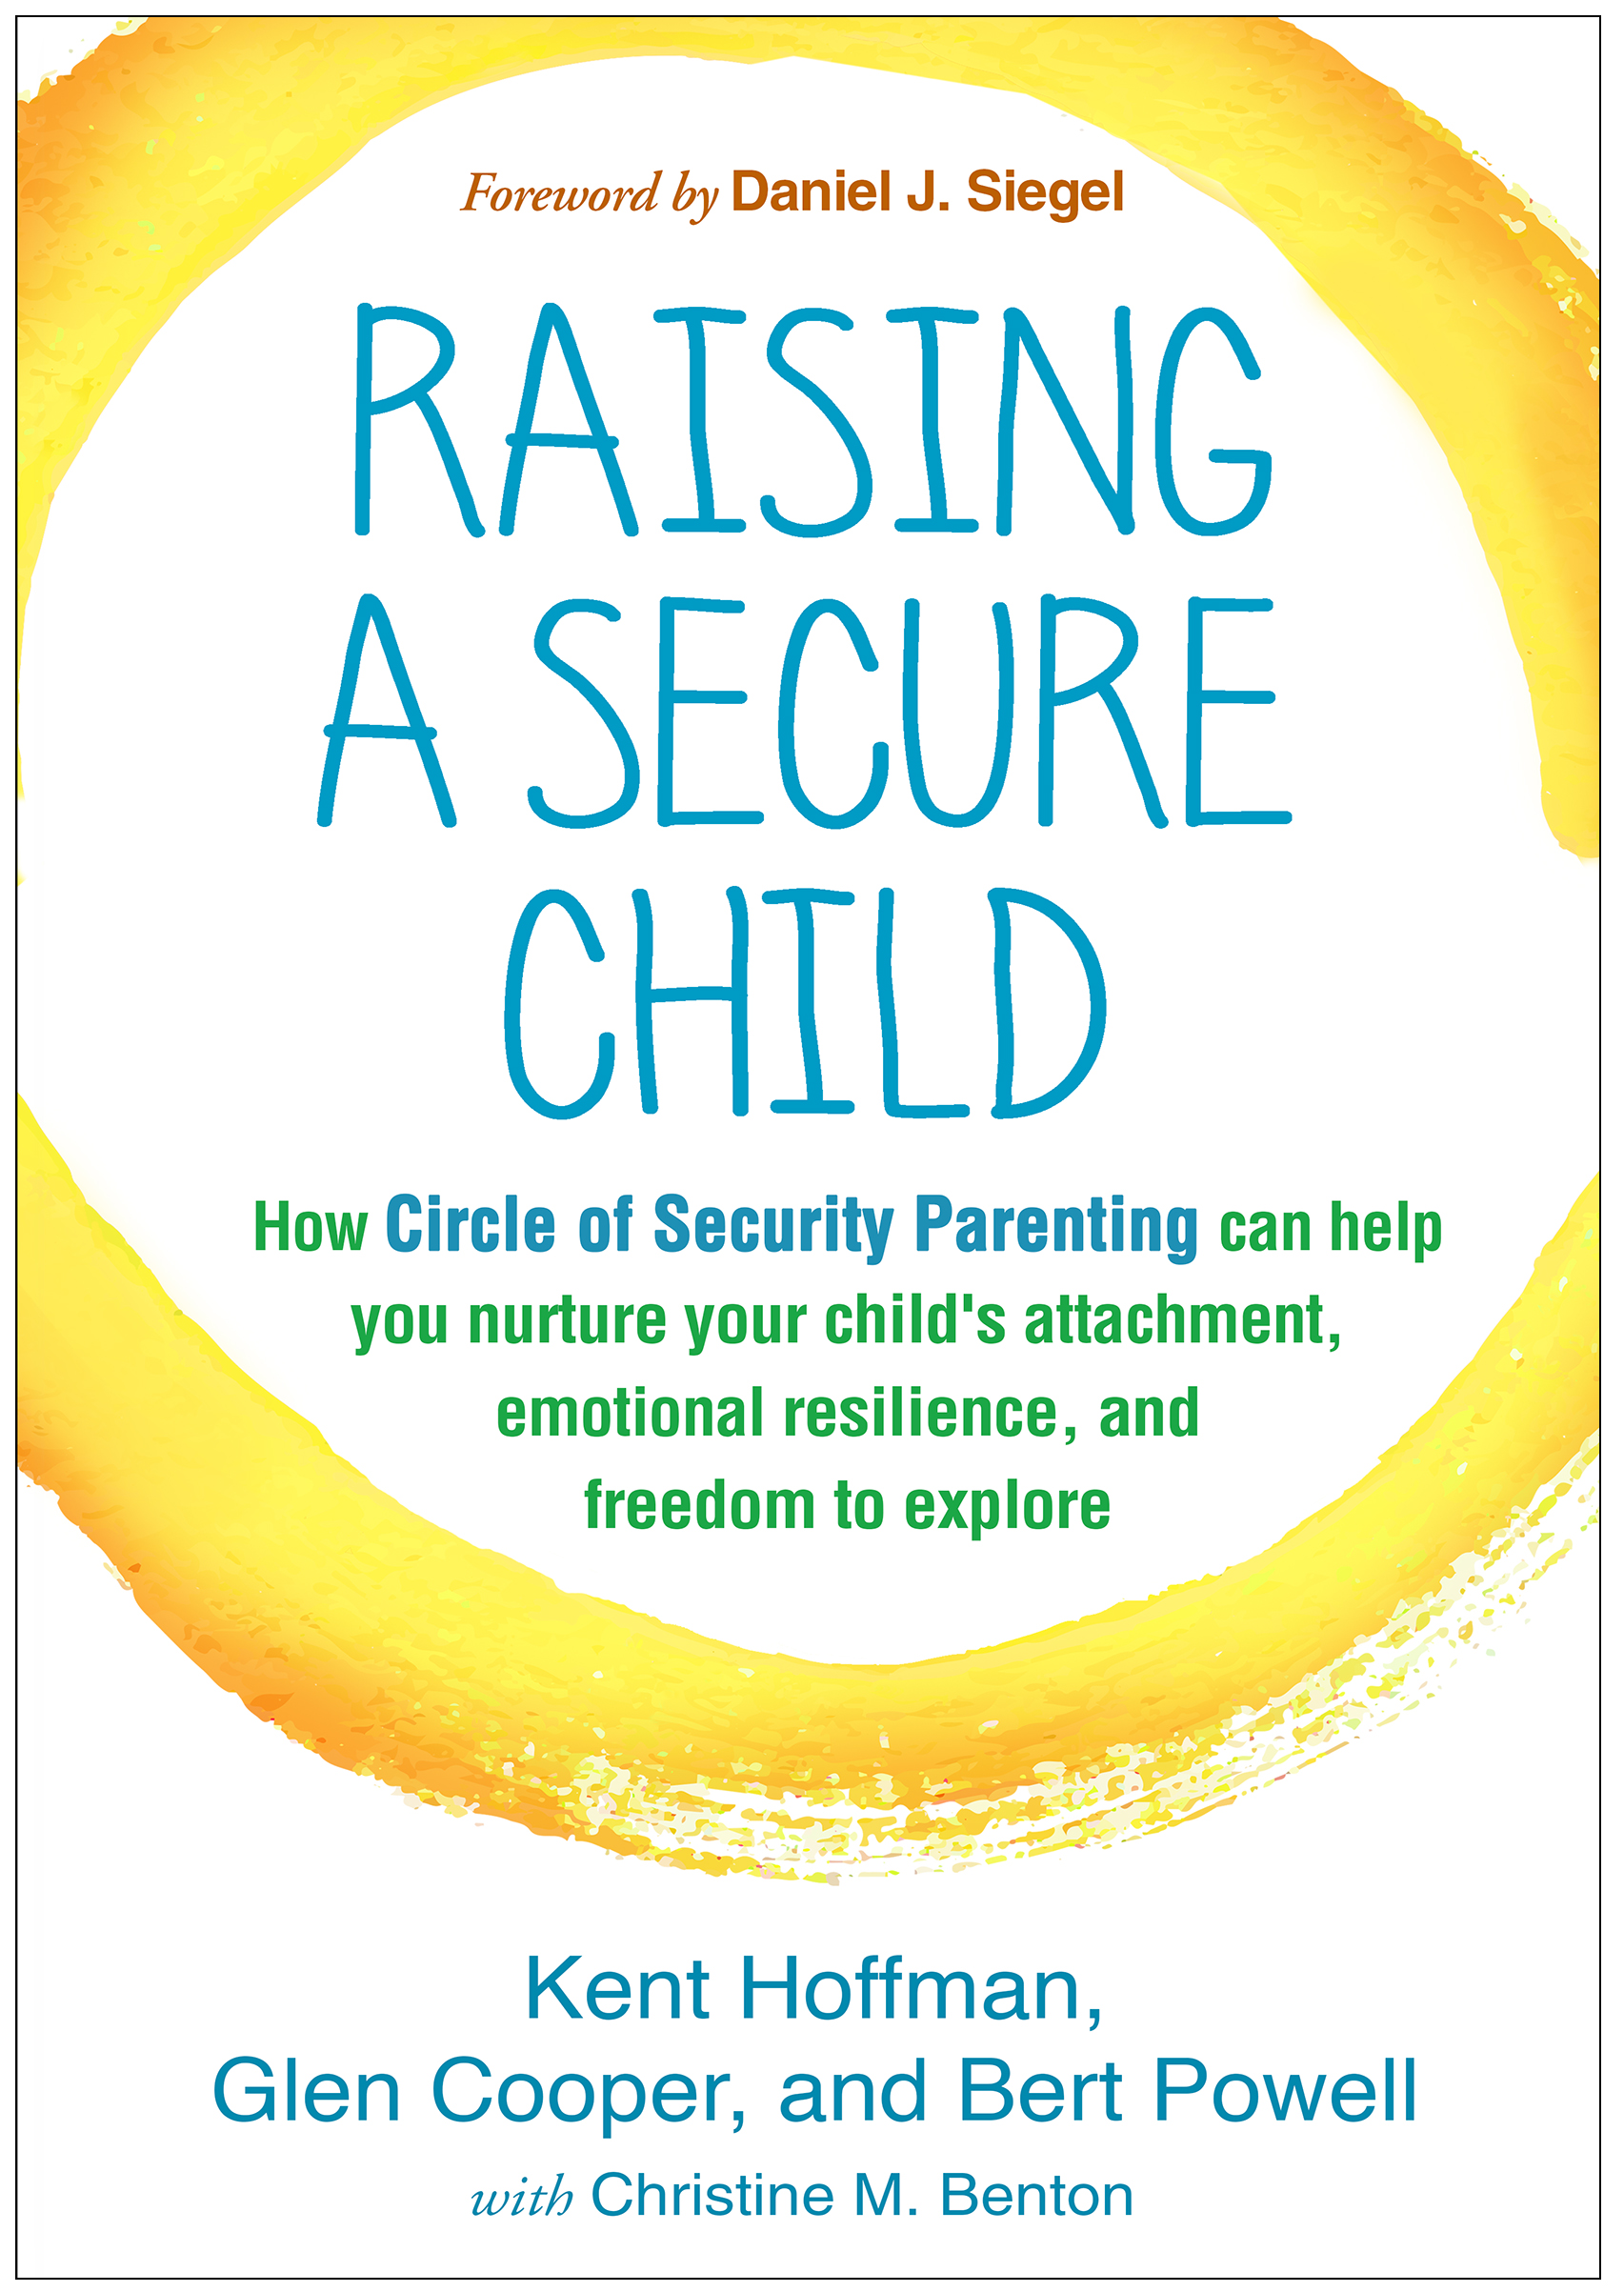 Raising a Secure Child: How Circle of Security Parenting Can Help You Nurture Your Child's Attachment, Emotional Resilience, and Freedom to Explore (Paperback) book cover